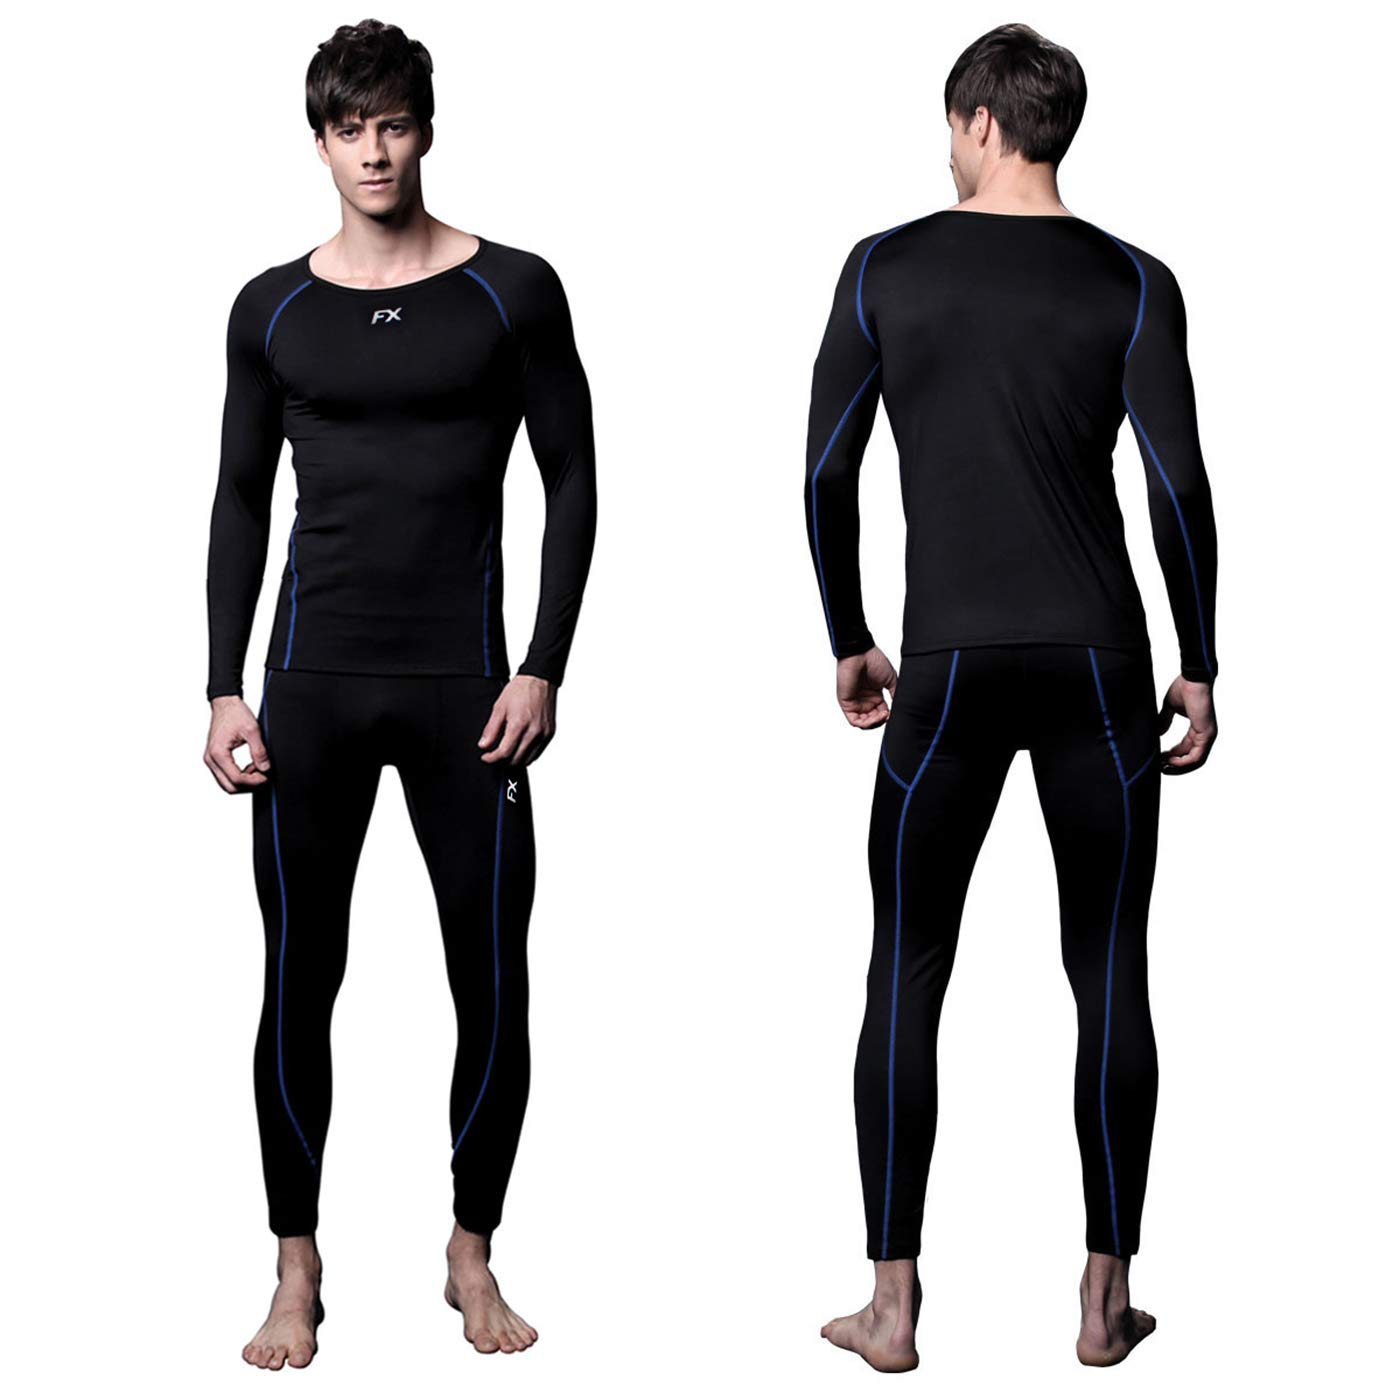 FITEXTREME Mens MAXHEAT Soft Fleece Long Johns Thermal Underwear Set Black L by FITEXTREME